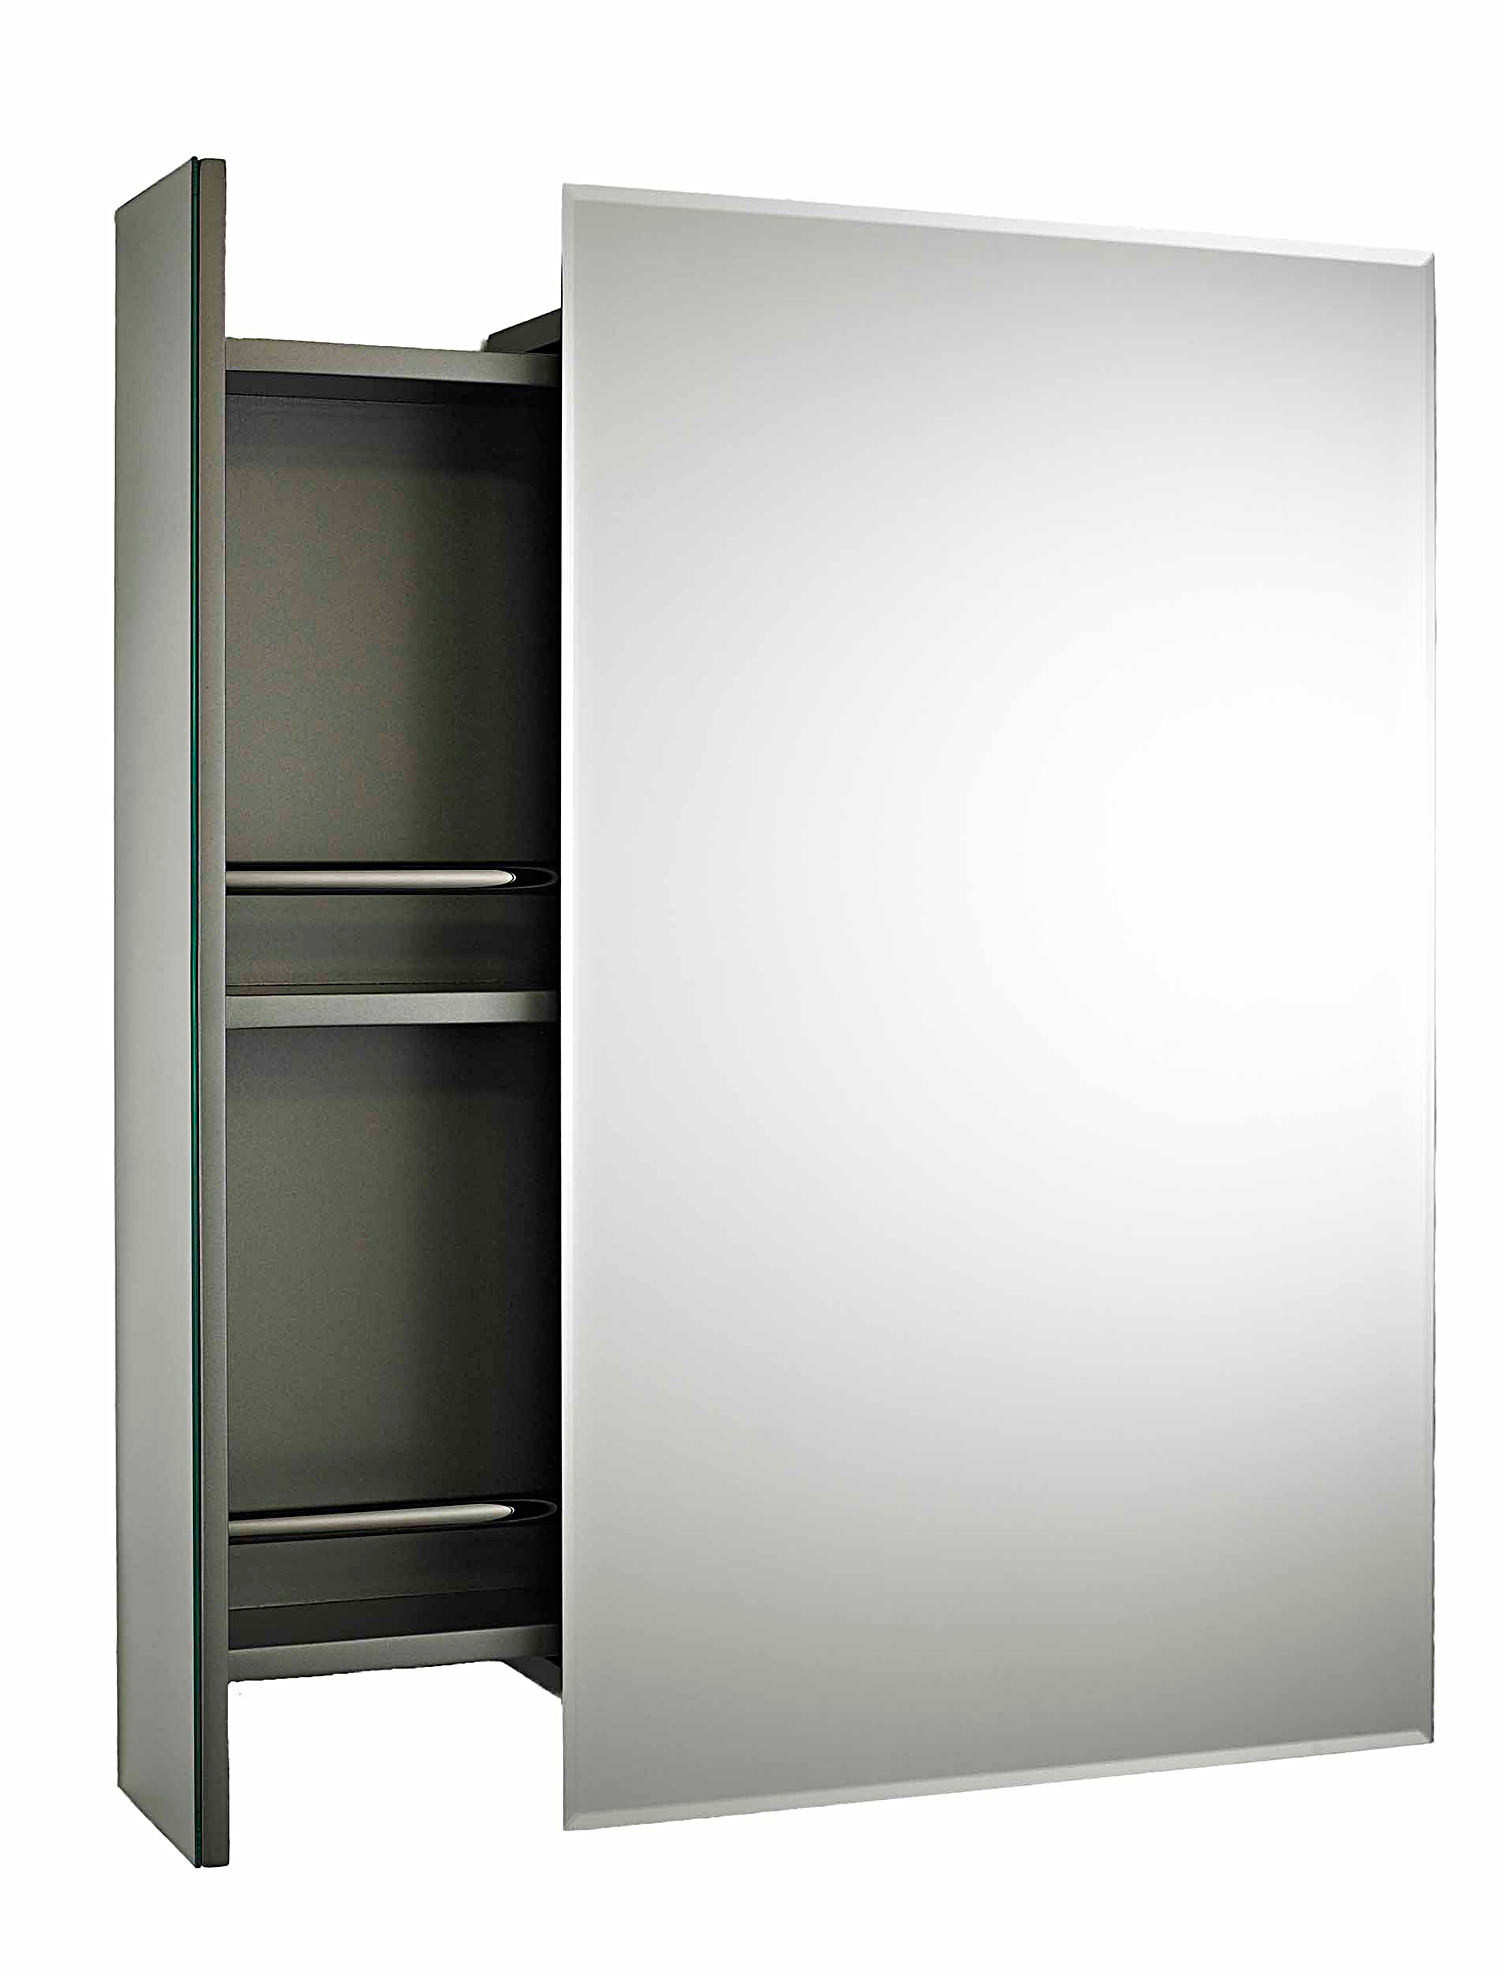 Lauren Intrigue Side Opening Mirrored Cabinet 460 X 750mm Lq039